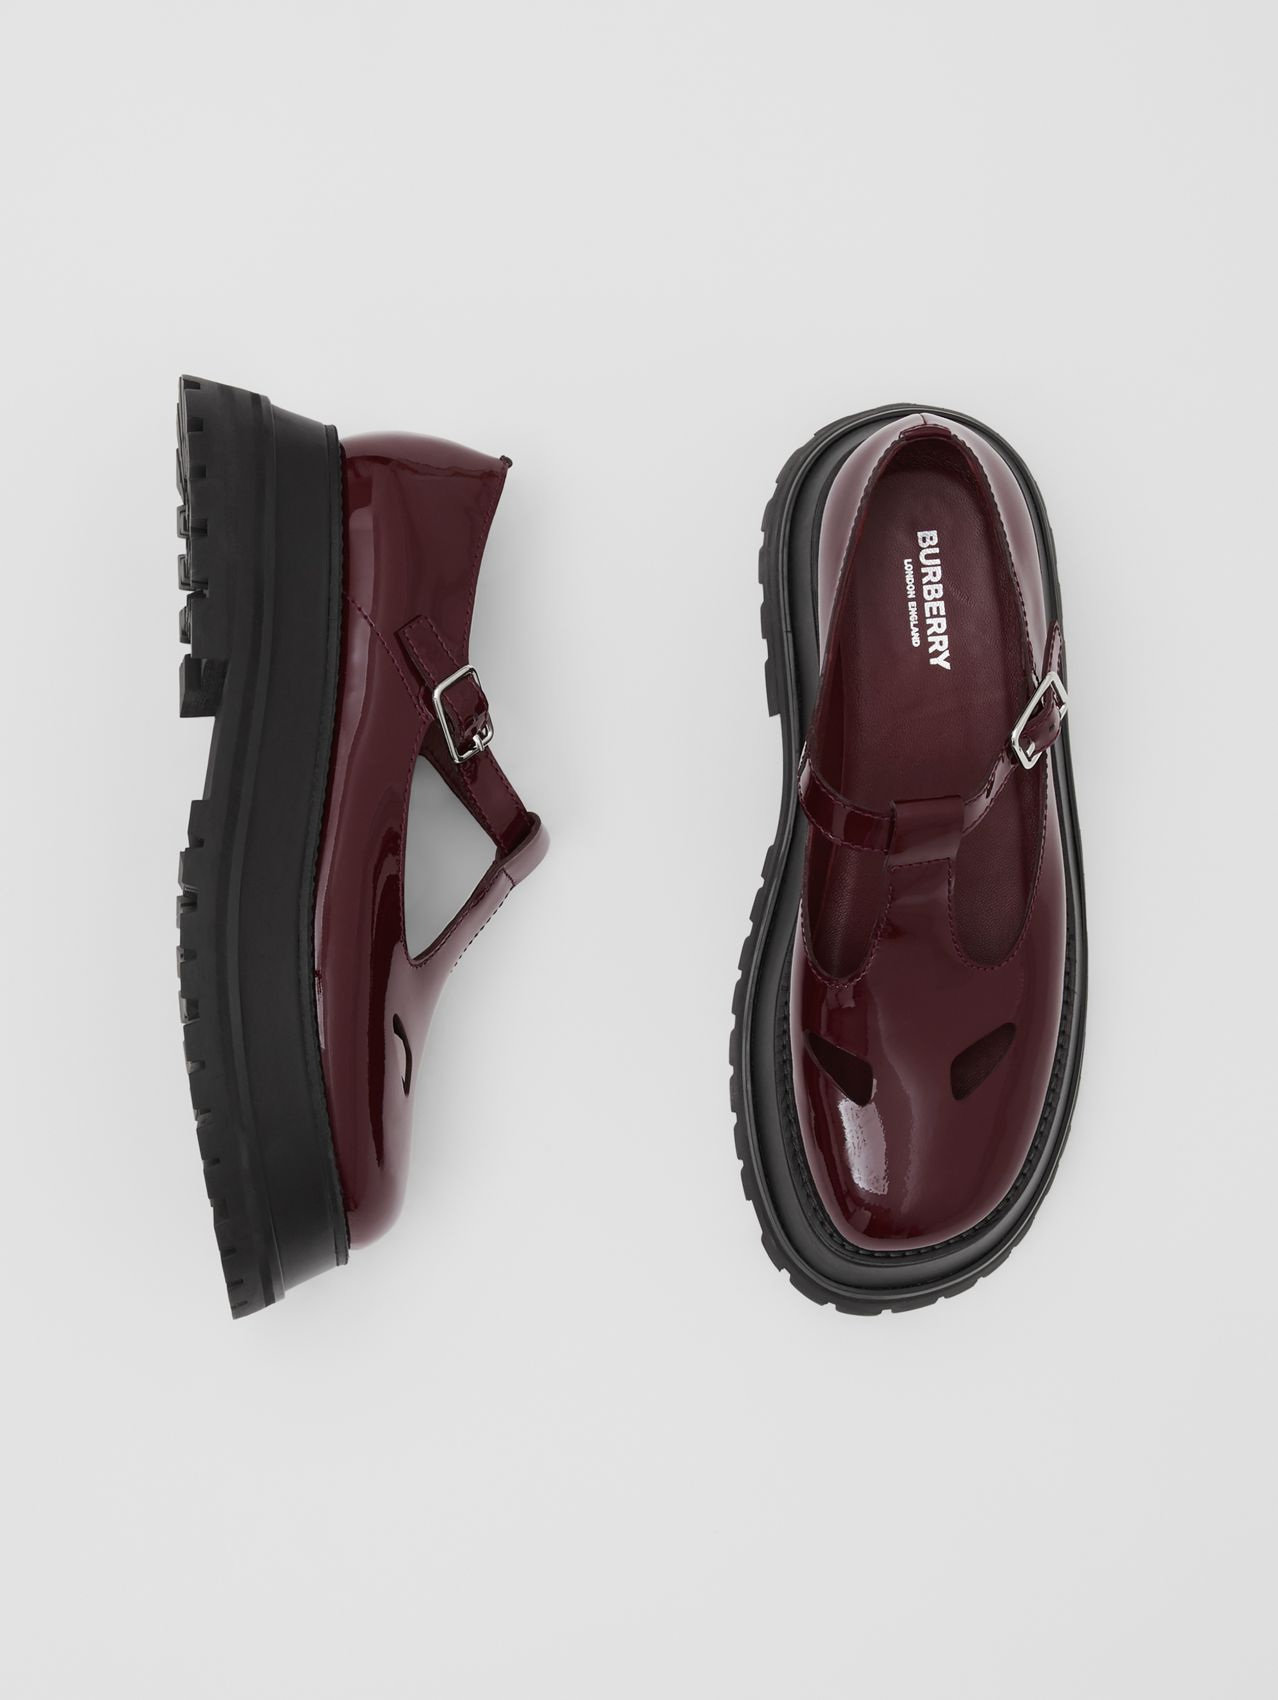 Patent Leather T-bar Shoes (Oxblood)